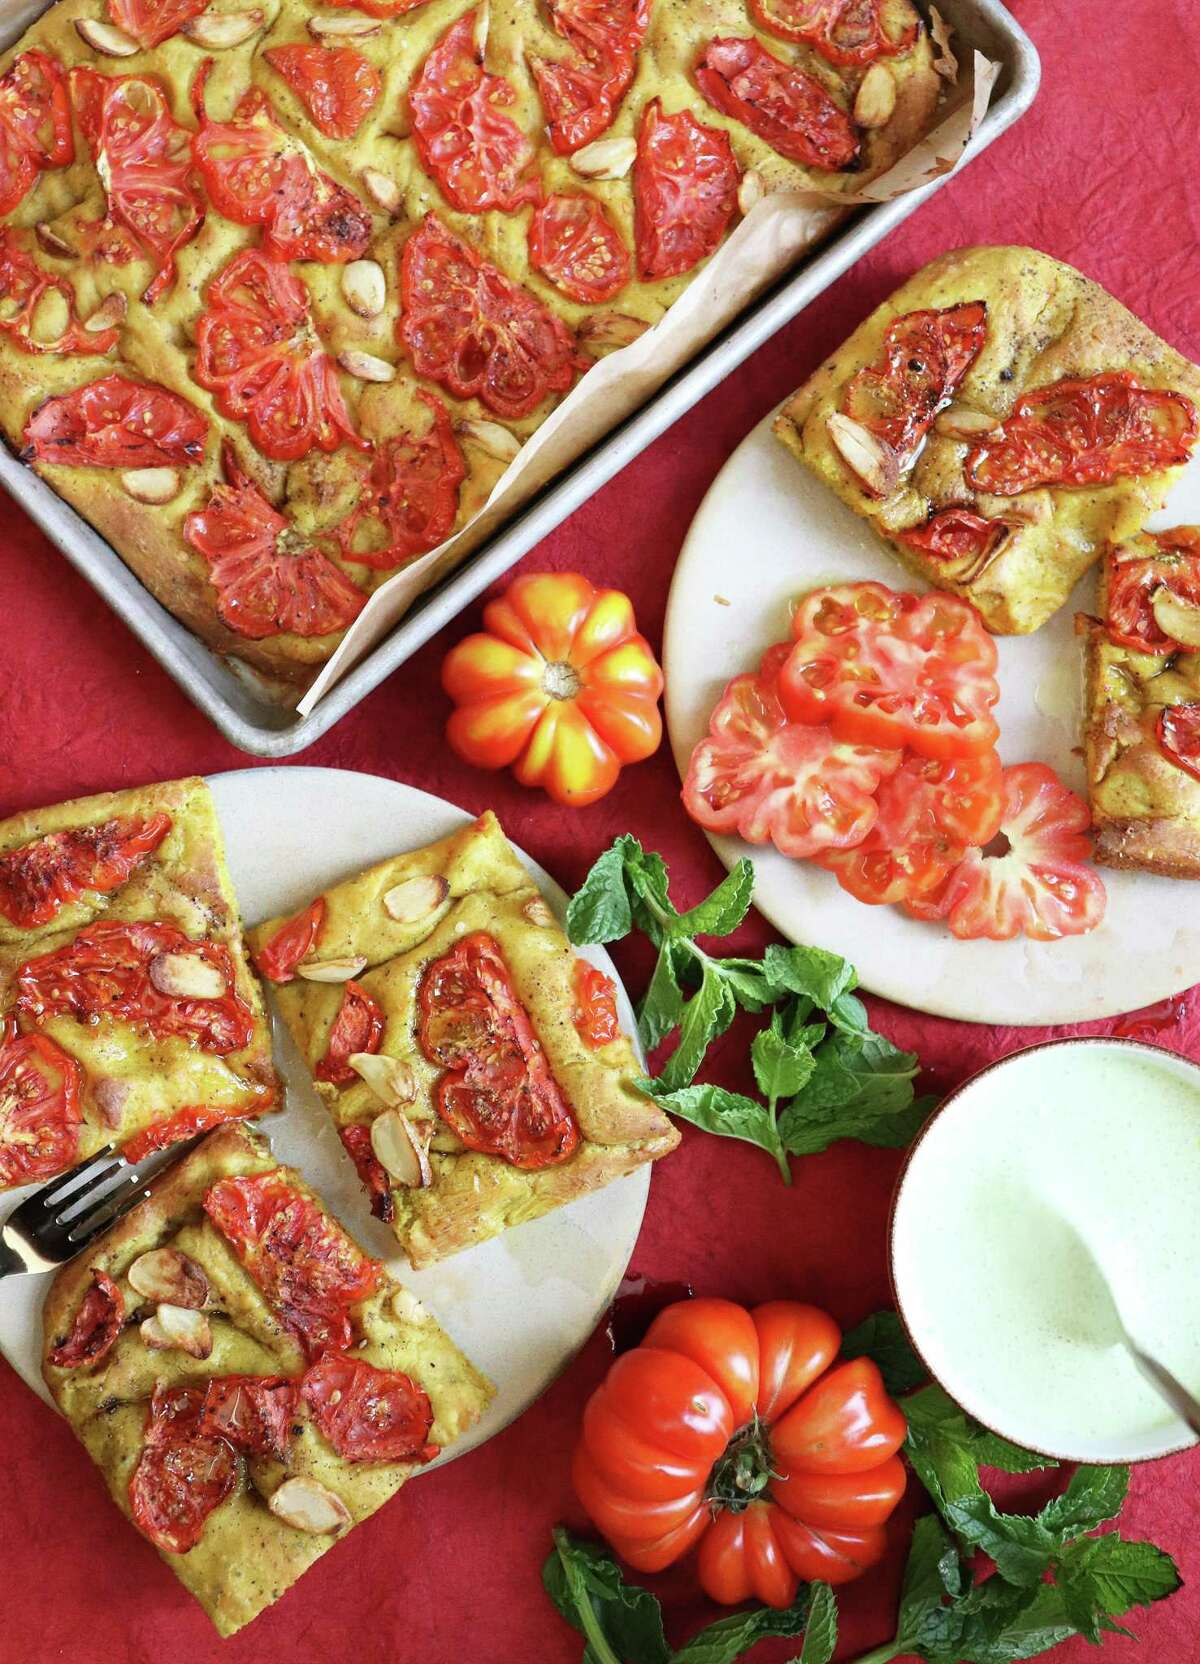 Tomato Bread is juicy and delicious, thanks to heirloom tomatoes from the farmers market.